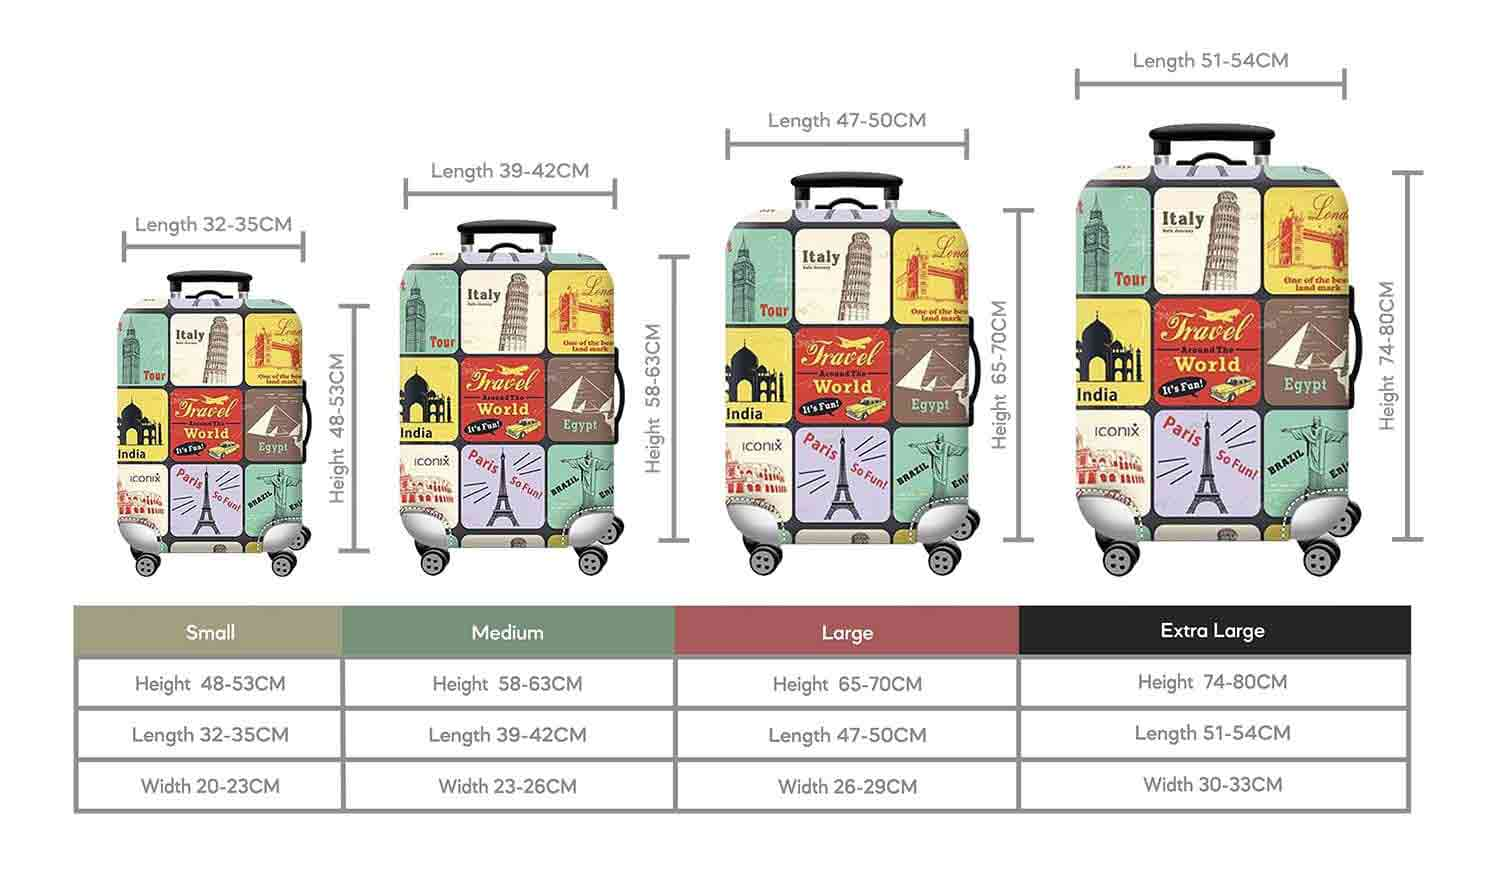 Size Chart for Iconix Landmark Travel Printed Luggage Protector